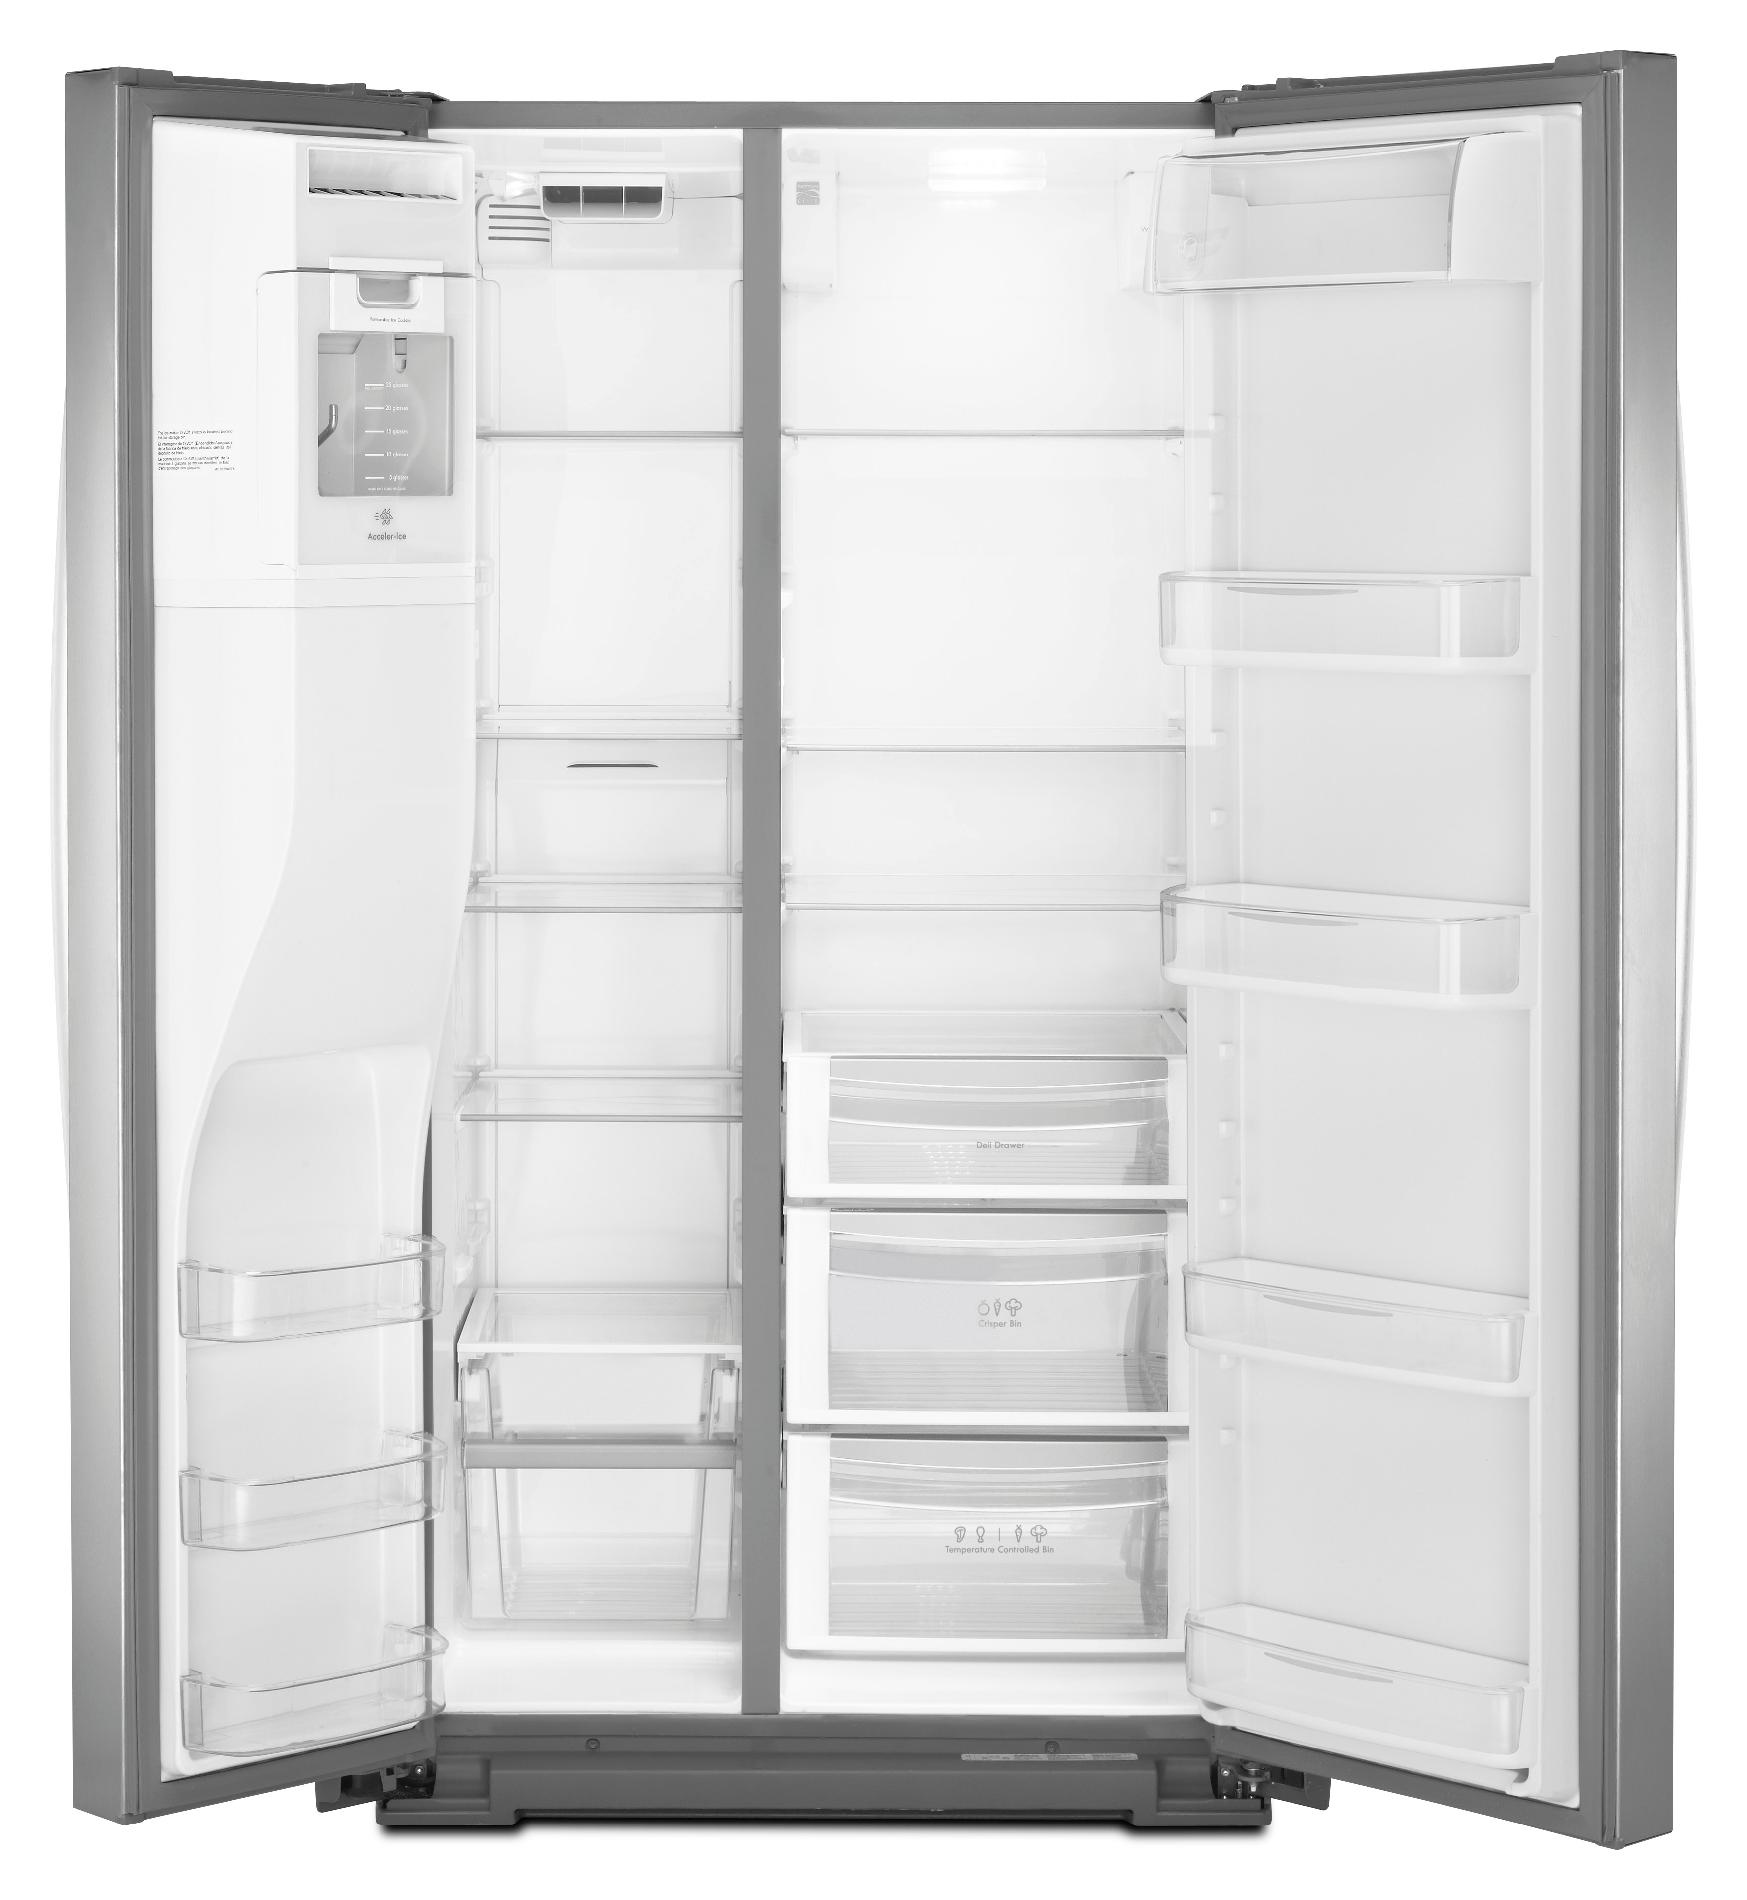 Kenmore Elite 26 cu. ft. Side-by-Side Refrigerator - Stainless Steel